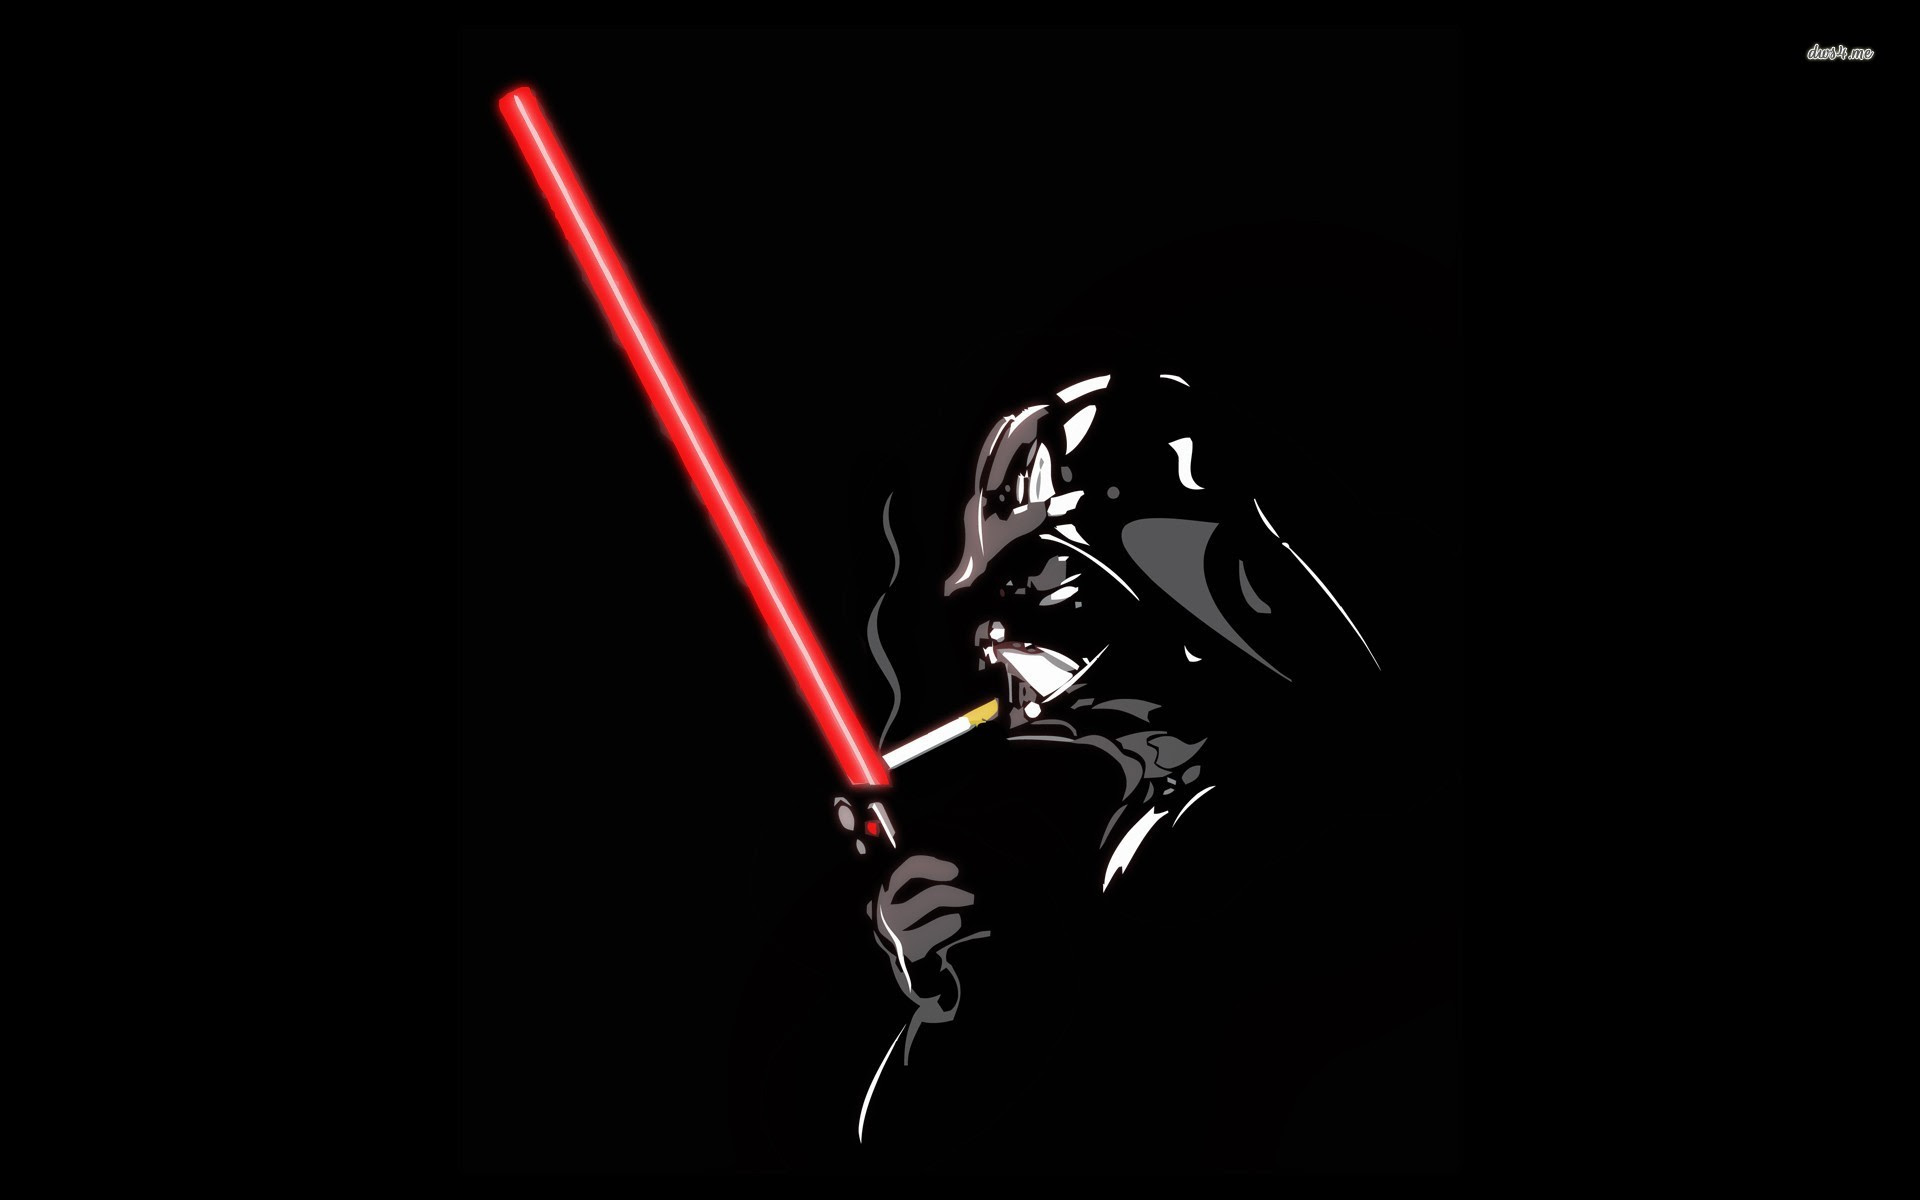 Darth Vader Rogue One Wallpaper Iphone Top Background